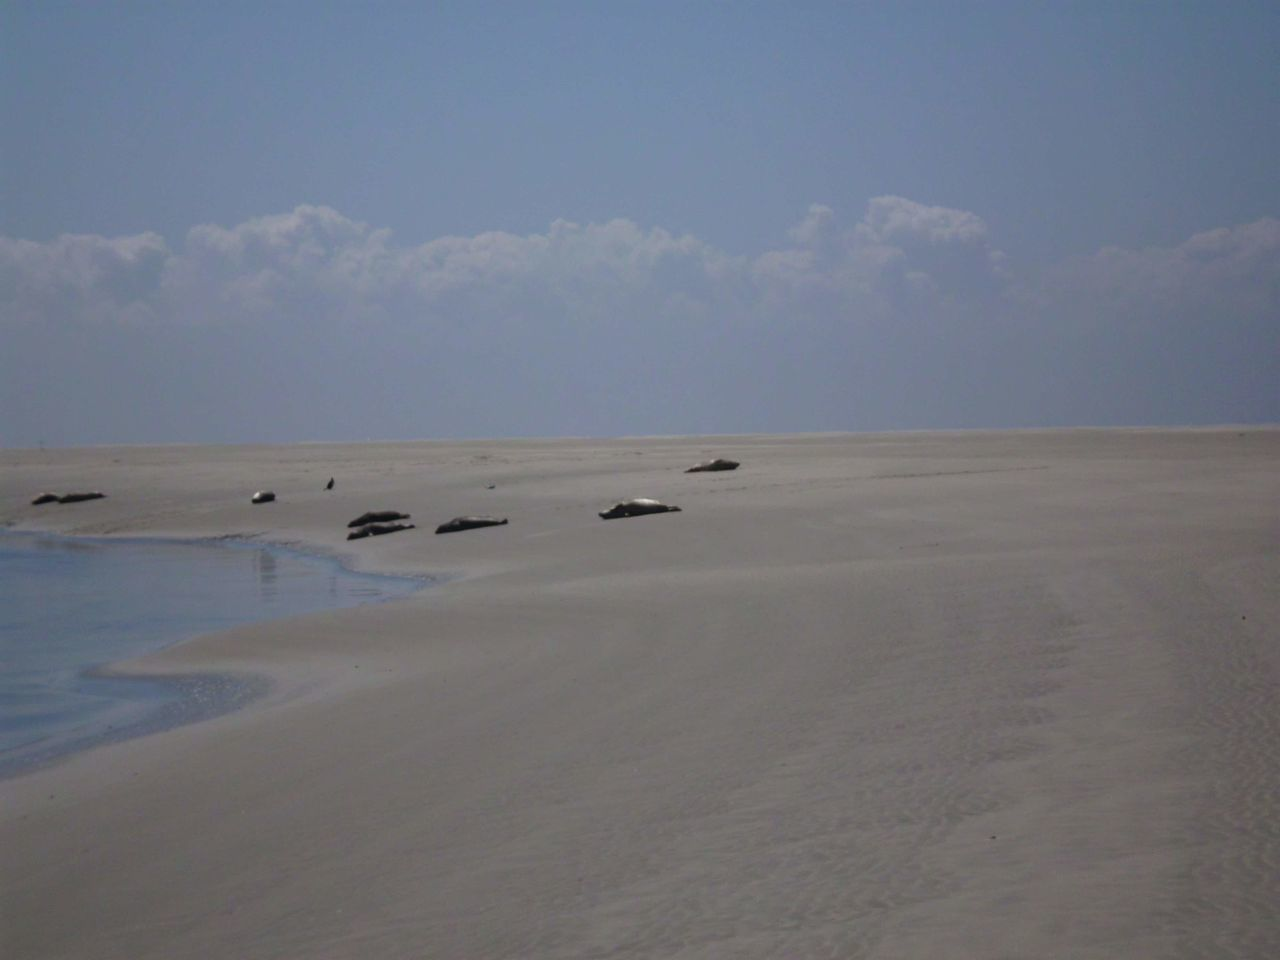 Borkum , Germany 2010 Summer Beach Sandbank Group Of Seal Sunbathing Sand Outdoors Landscape Beach Sky No People Day Tranquility Nature Sea Scenics Low Tide Horizon Over Water Beauty In Nature Animal Themes